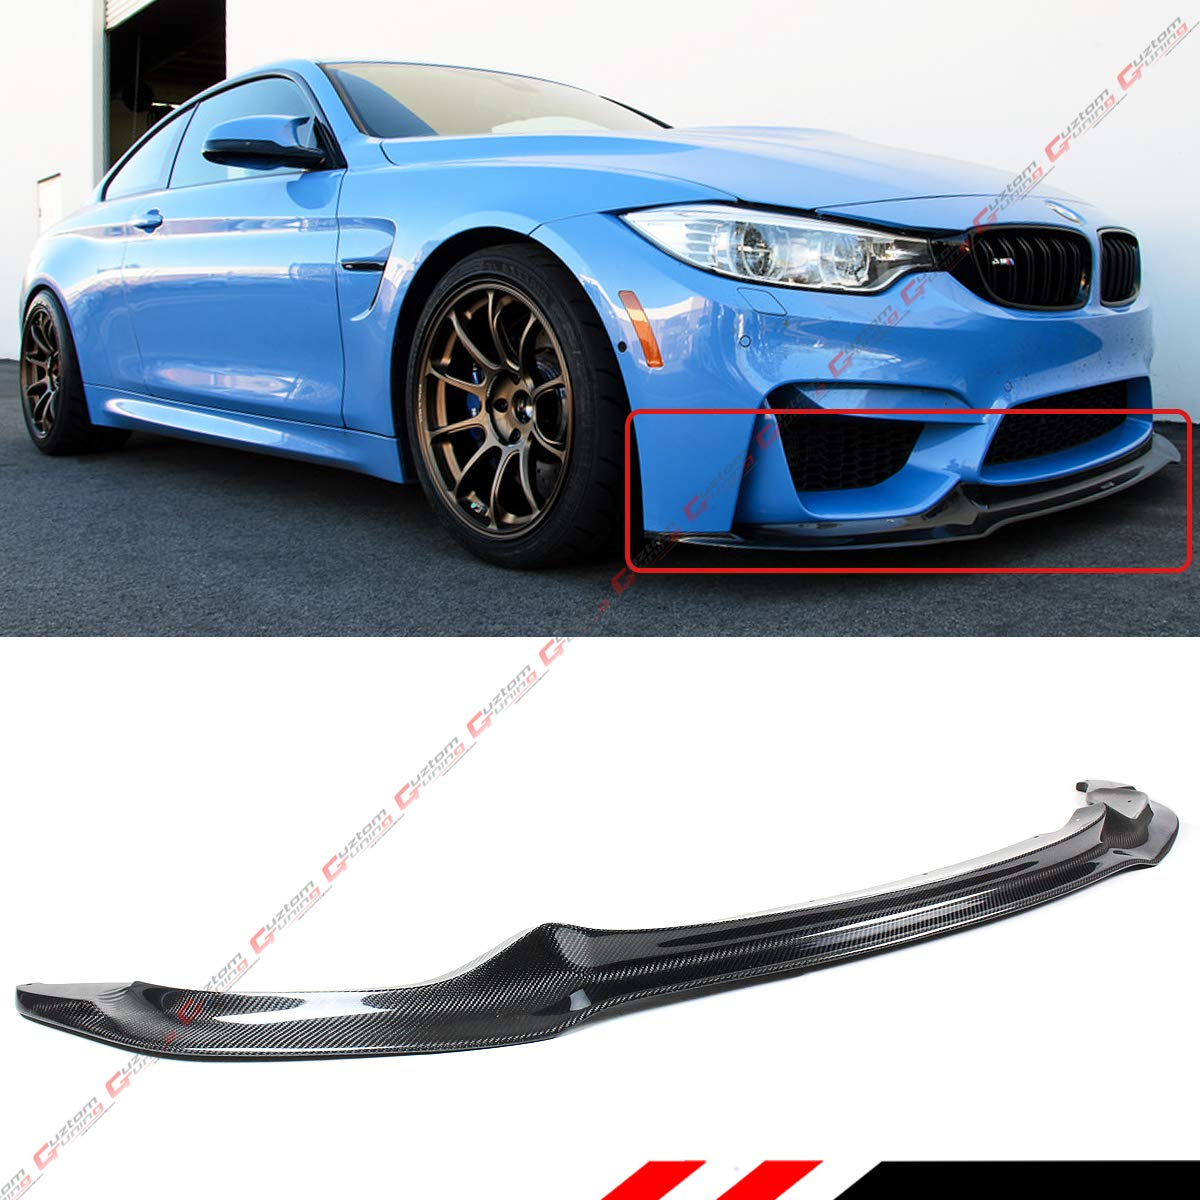 Cuztom Tuning Fits for 2015-2019 BMW F80 M3 F82 M4 F87 M2C Competition Carbon Fiber Direct Replacement Side View Mirror Covers